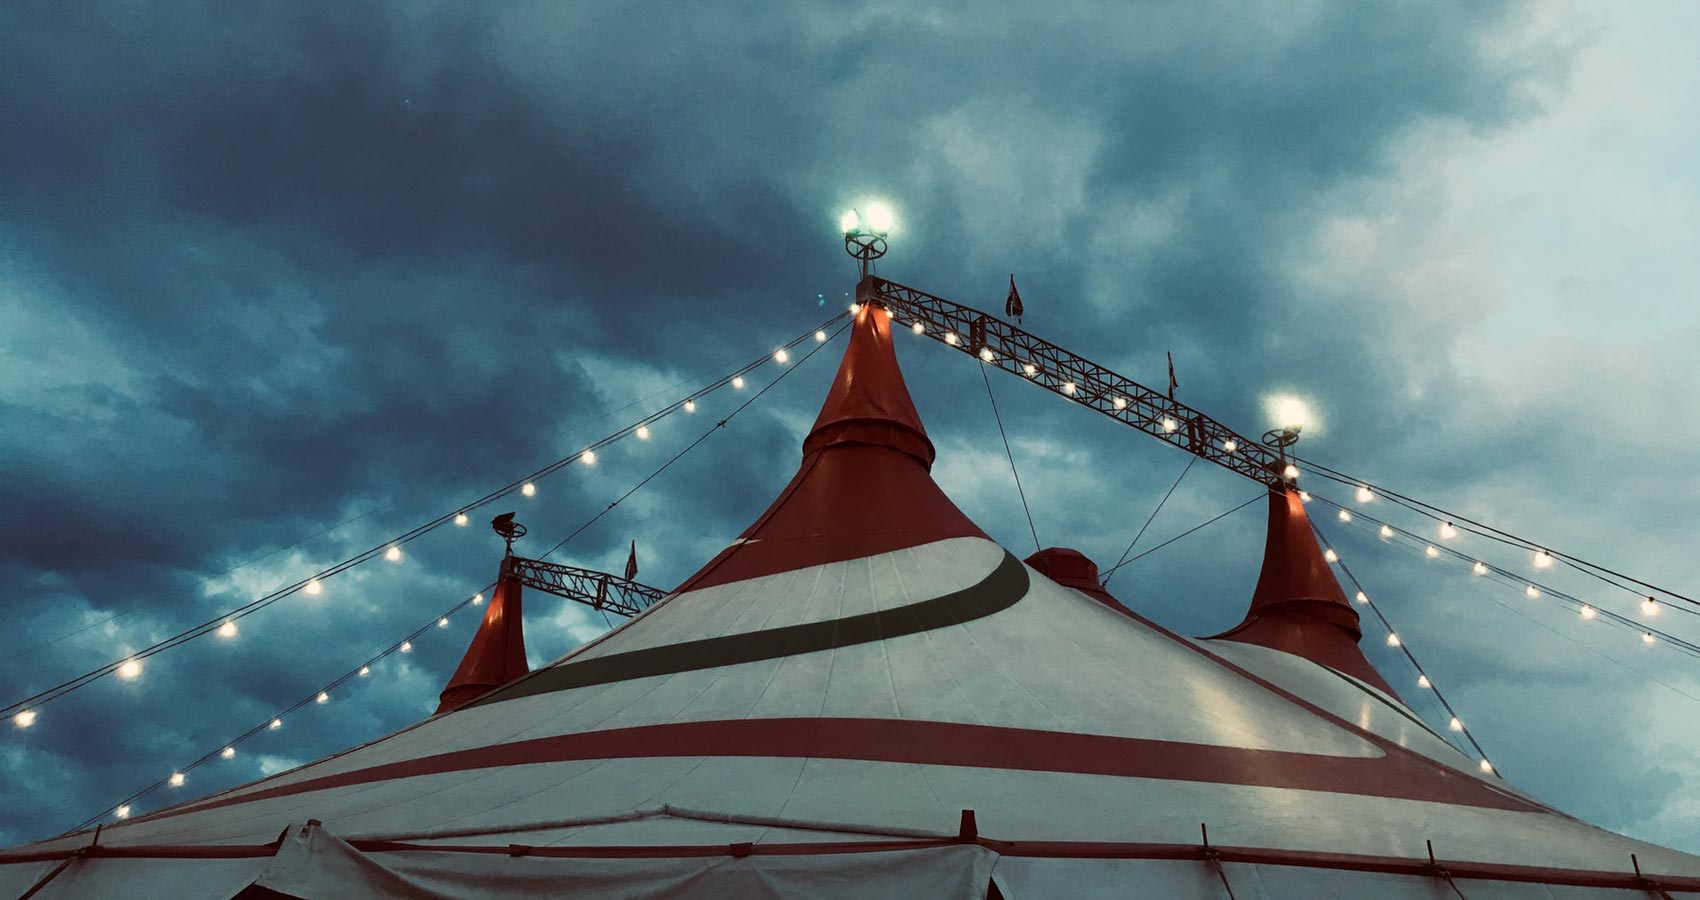 Circus, poetry by Liam Flanagan at Spillwords.com